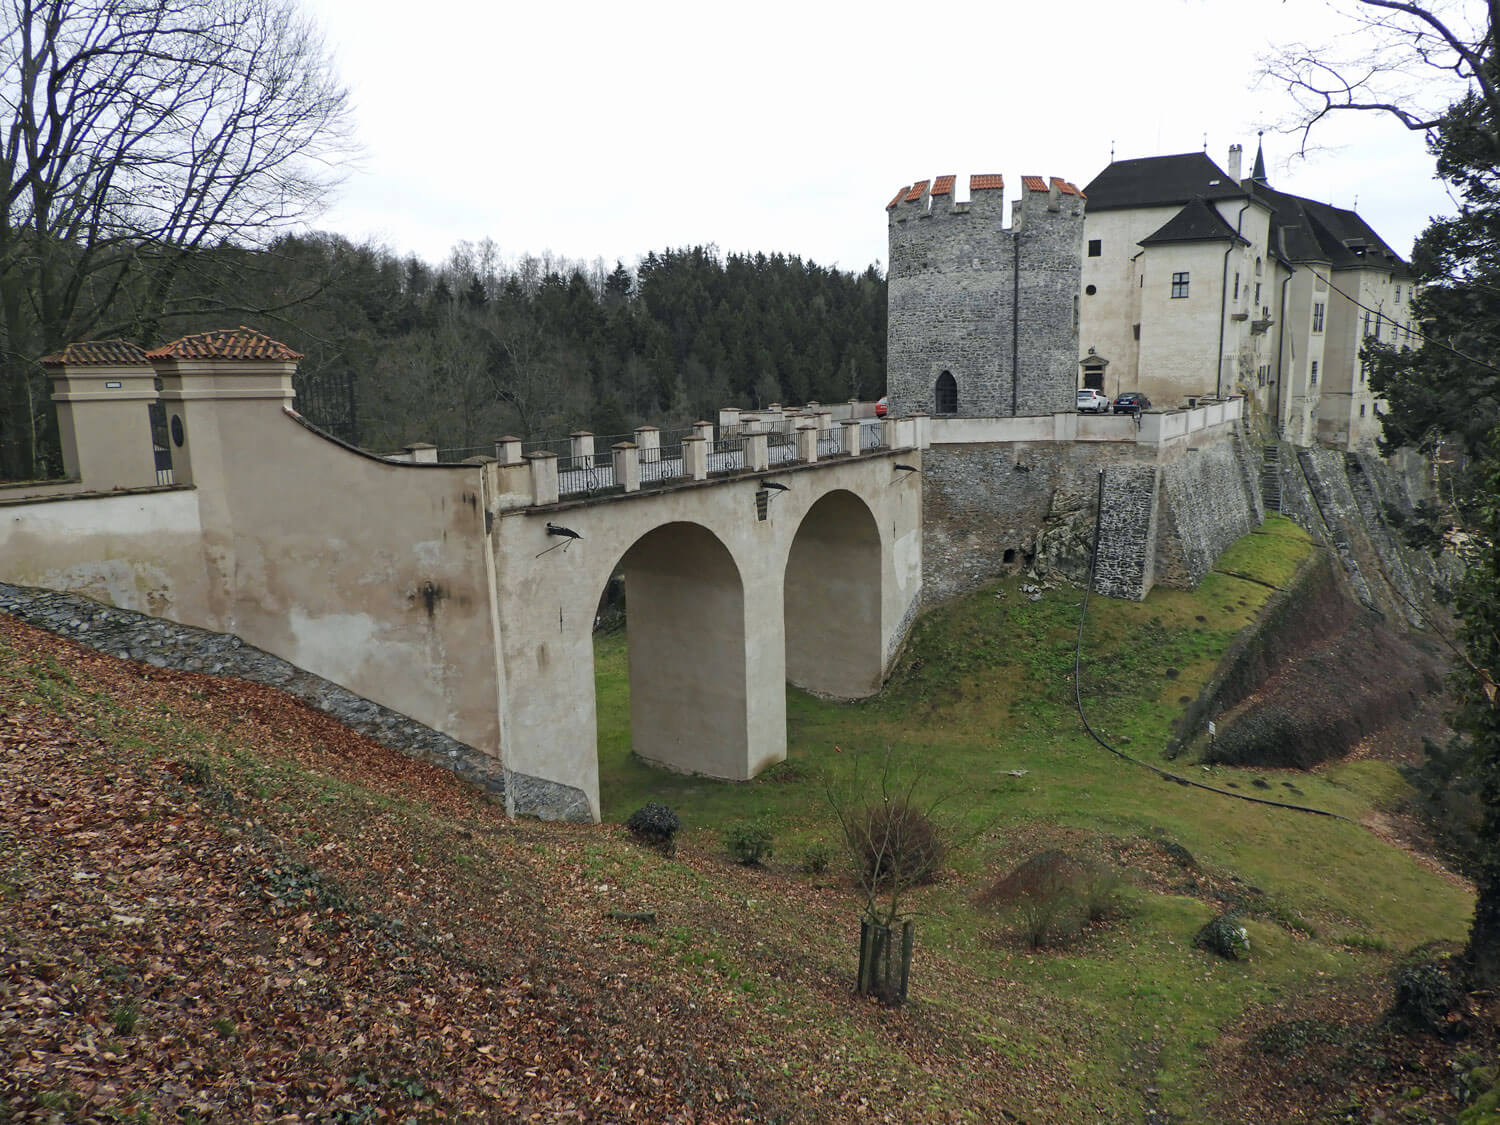 czech-cesky-sternberk-castle-bridge-tower-gate-private.jpg